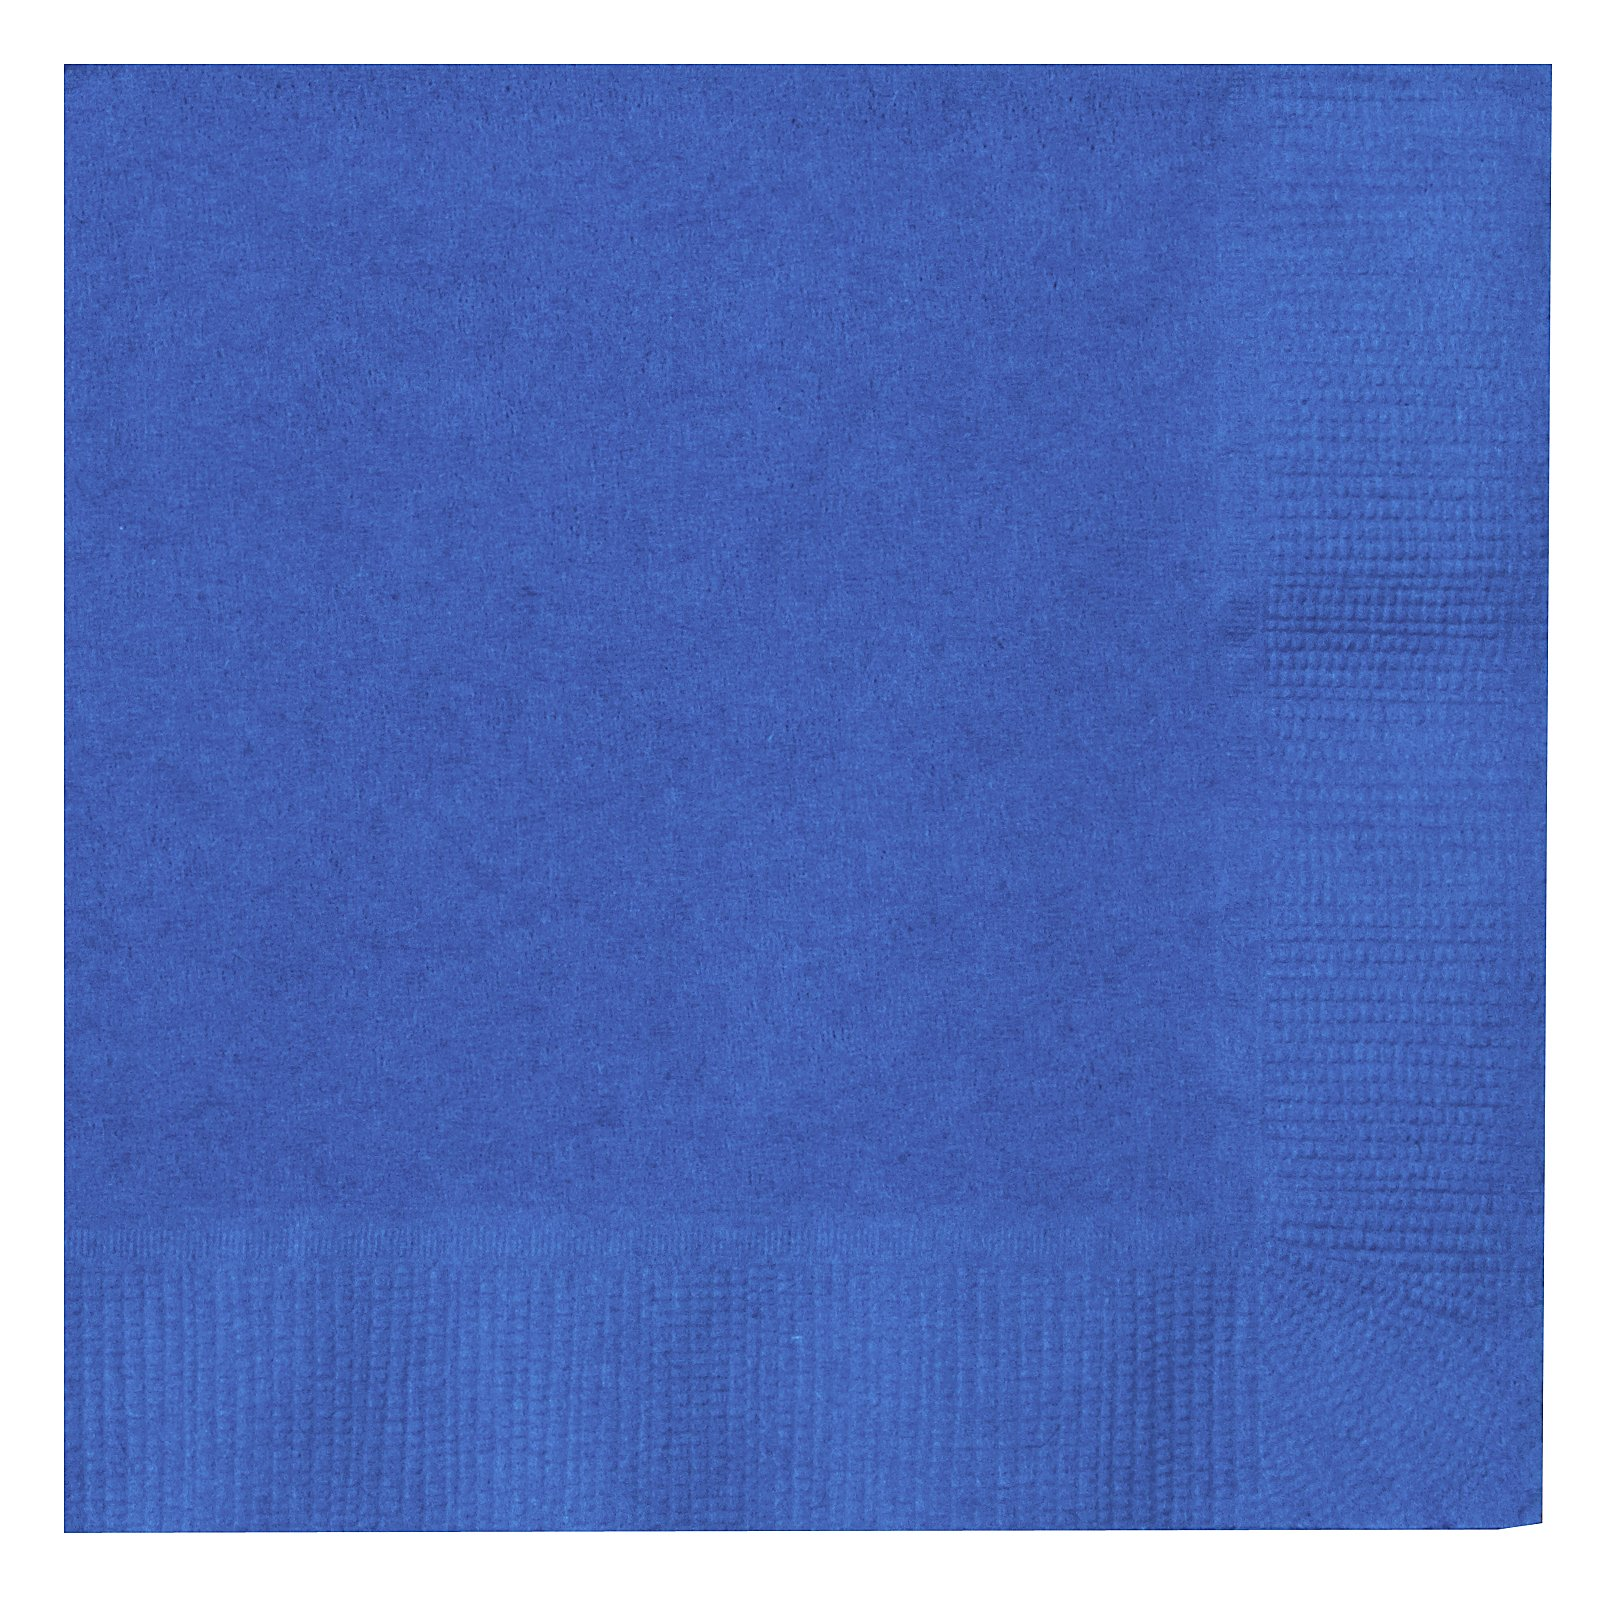 True Blue (Blue) Beverage Napkins (50 count)